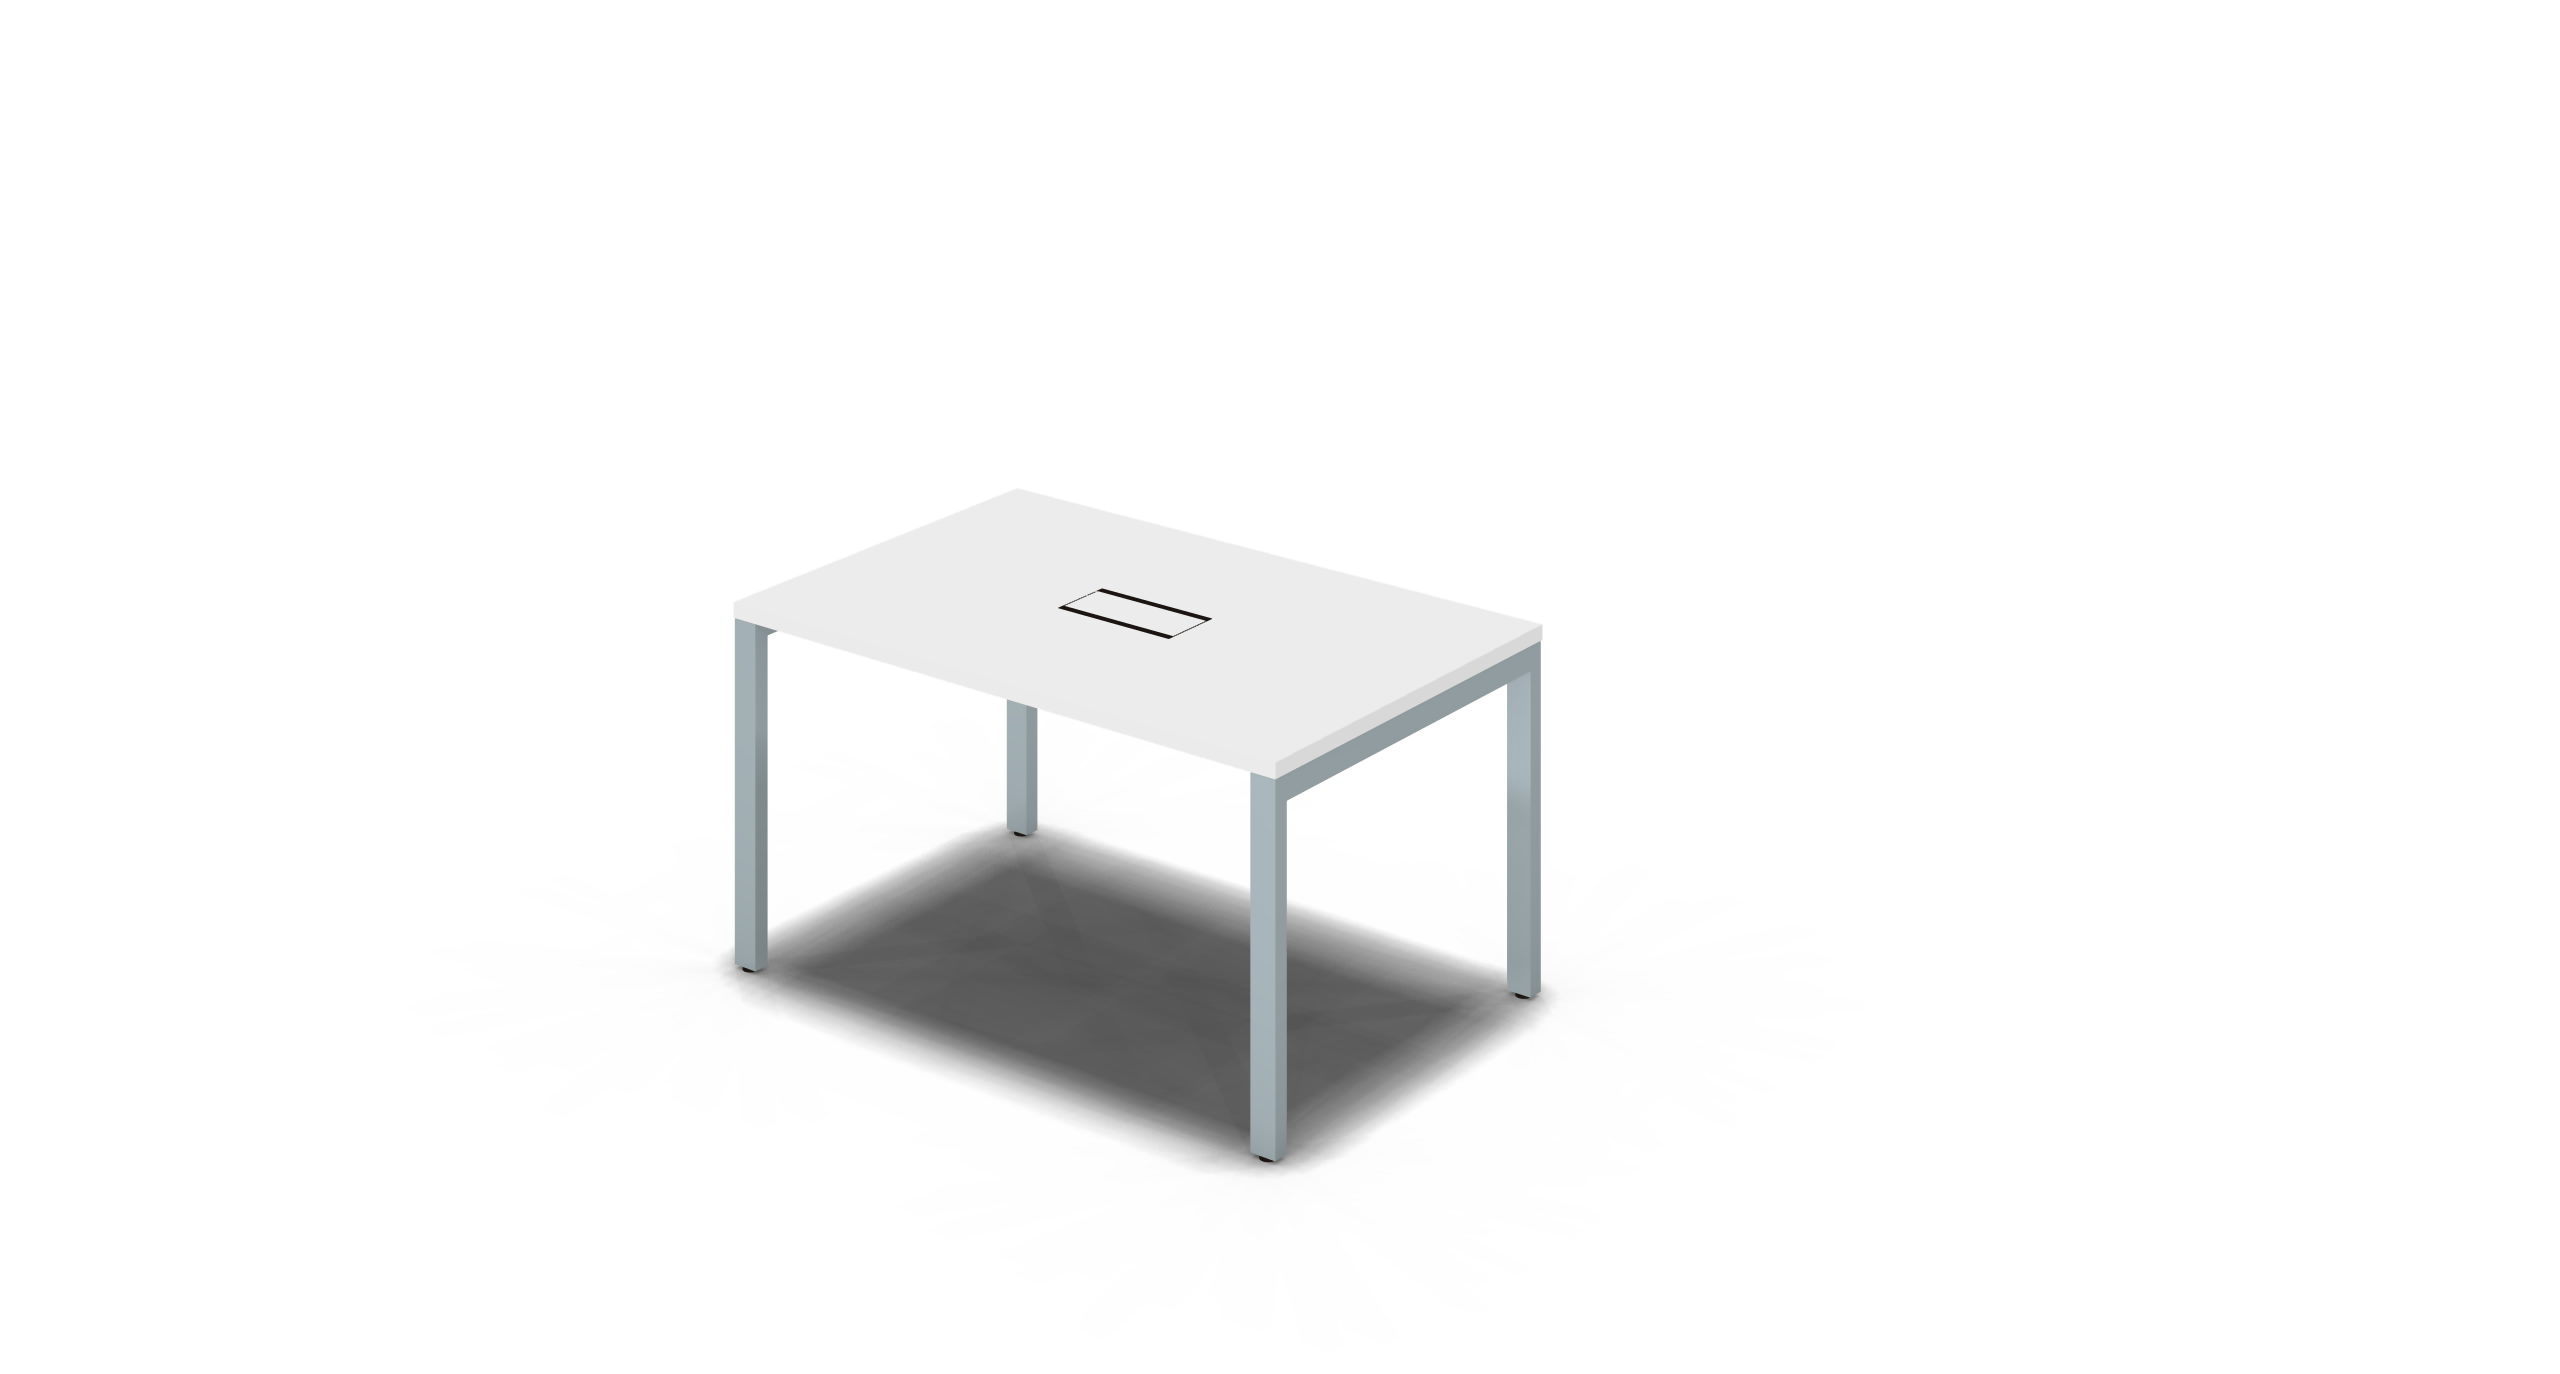 Table_Square_1200x750_Silver_White_withOption